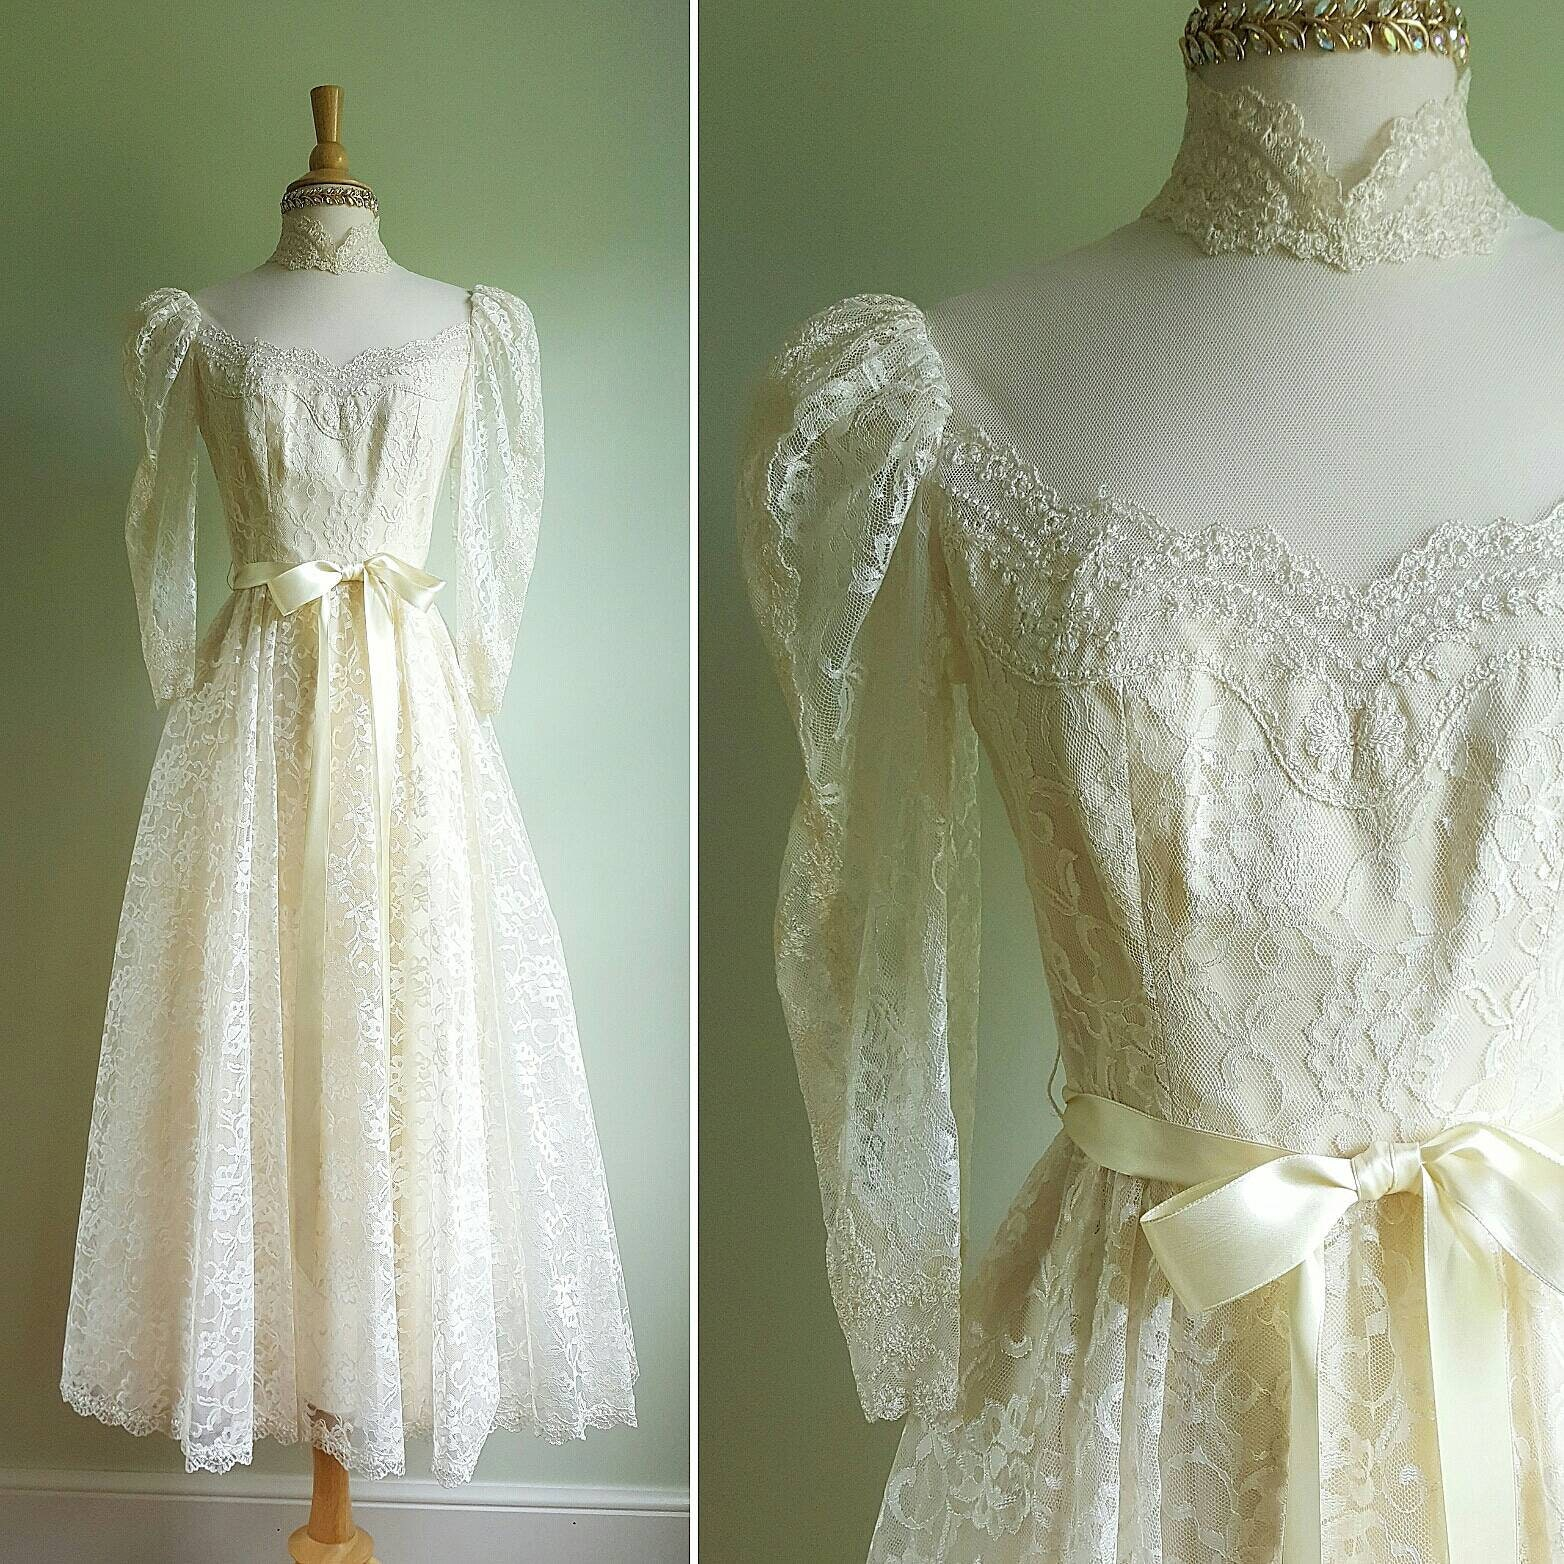 80s Dresses | Casual to Party Dresses Vintage 1970S Antique White Cream Lace Dress, Formal, Party, Wedding Gown, Puff Sleeves, High Neck, Full Skirt, Tulle, Lace, Taffeta $40.00 AT vintagedancer.com